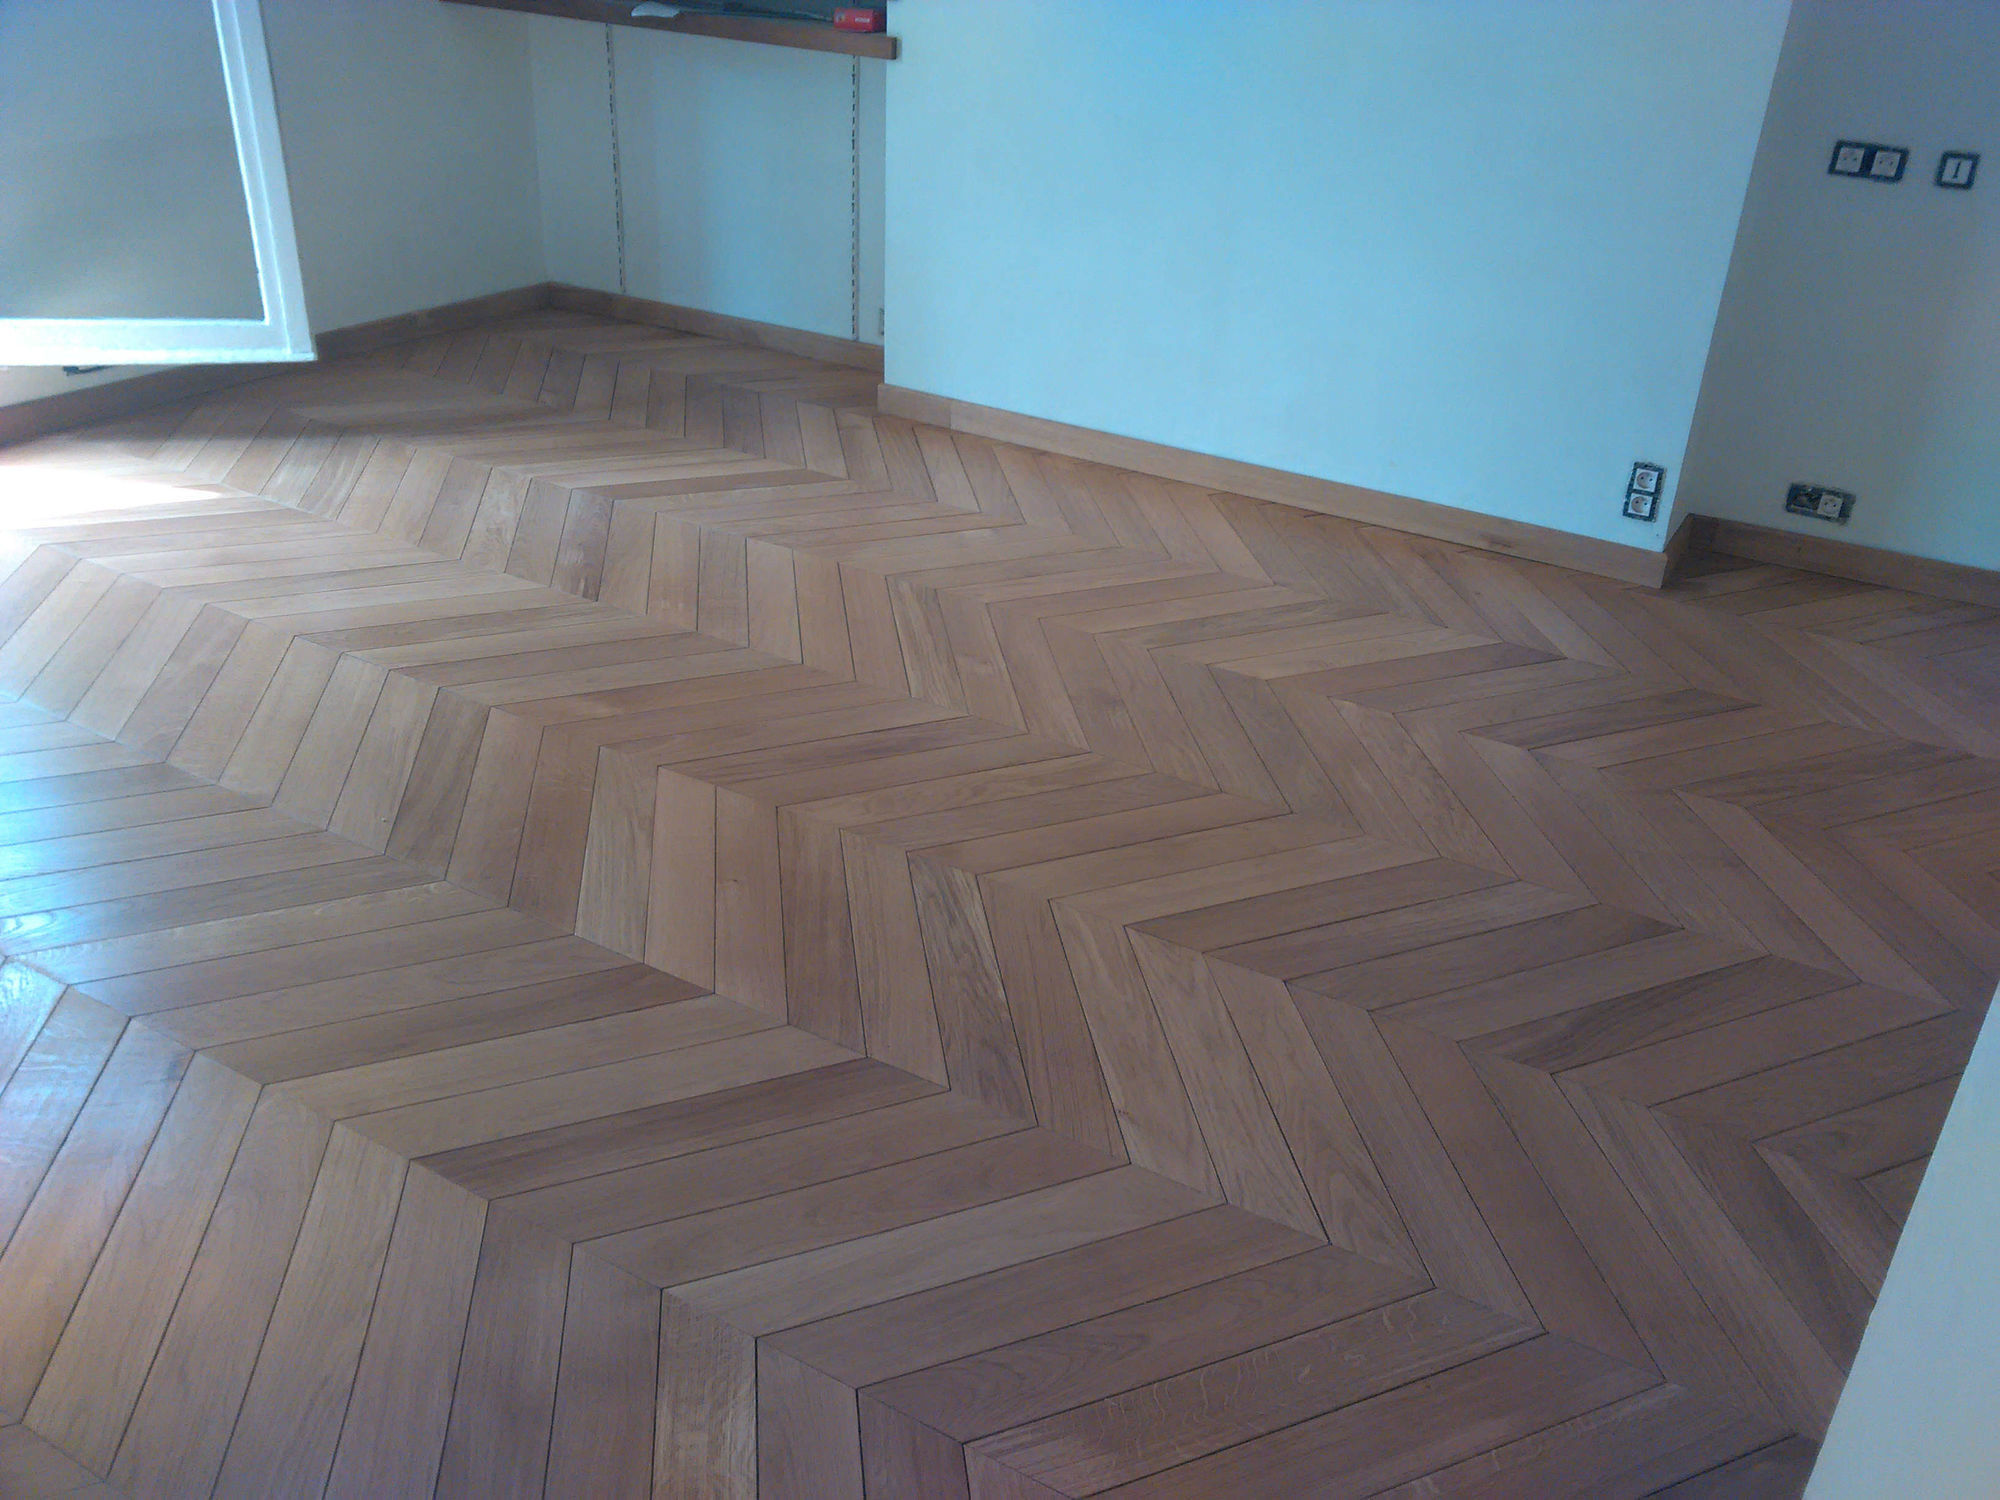 parquet hongrie best parquet point de hongrie with parquet hongrie parquet point de hongrie. Black Bedroom Furniture Sets. Home Design Ideas